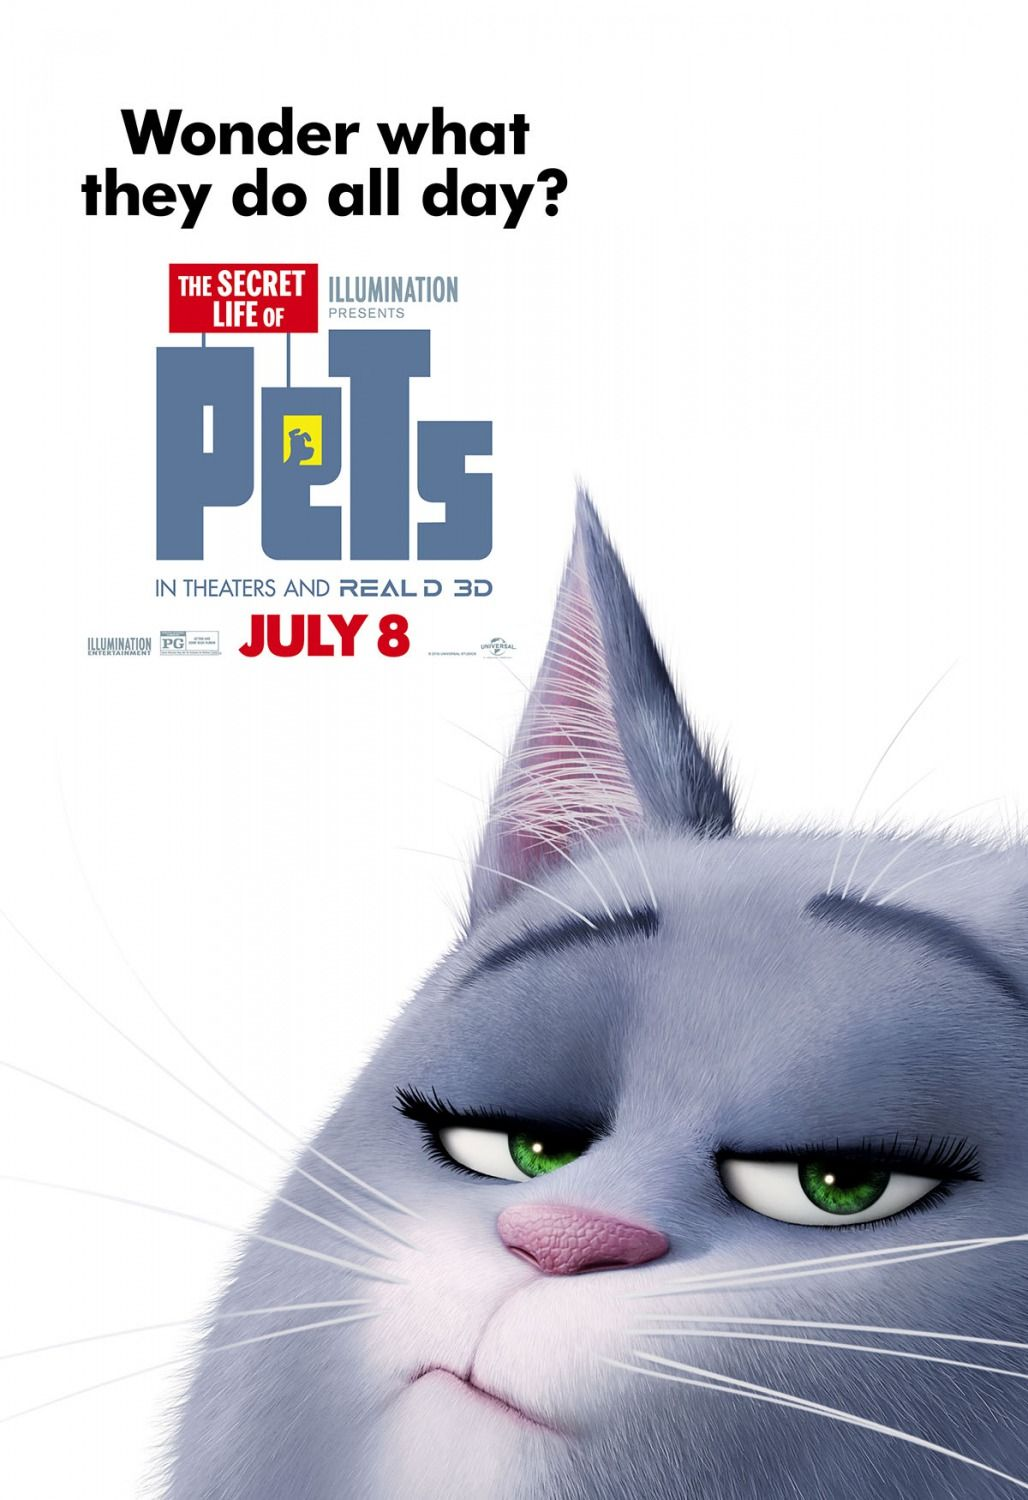 The Secret Life Of Pets Clips And Posters Pets Movie Secret Life Of Pets Secret Life